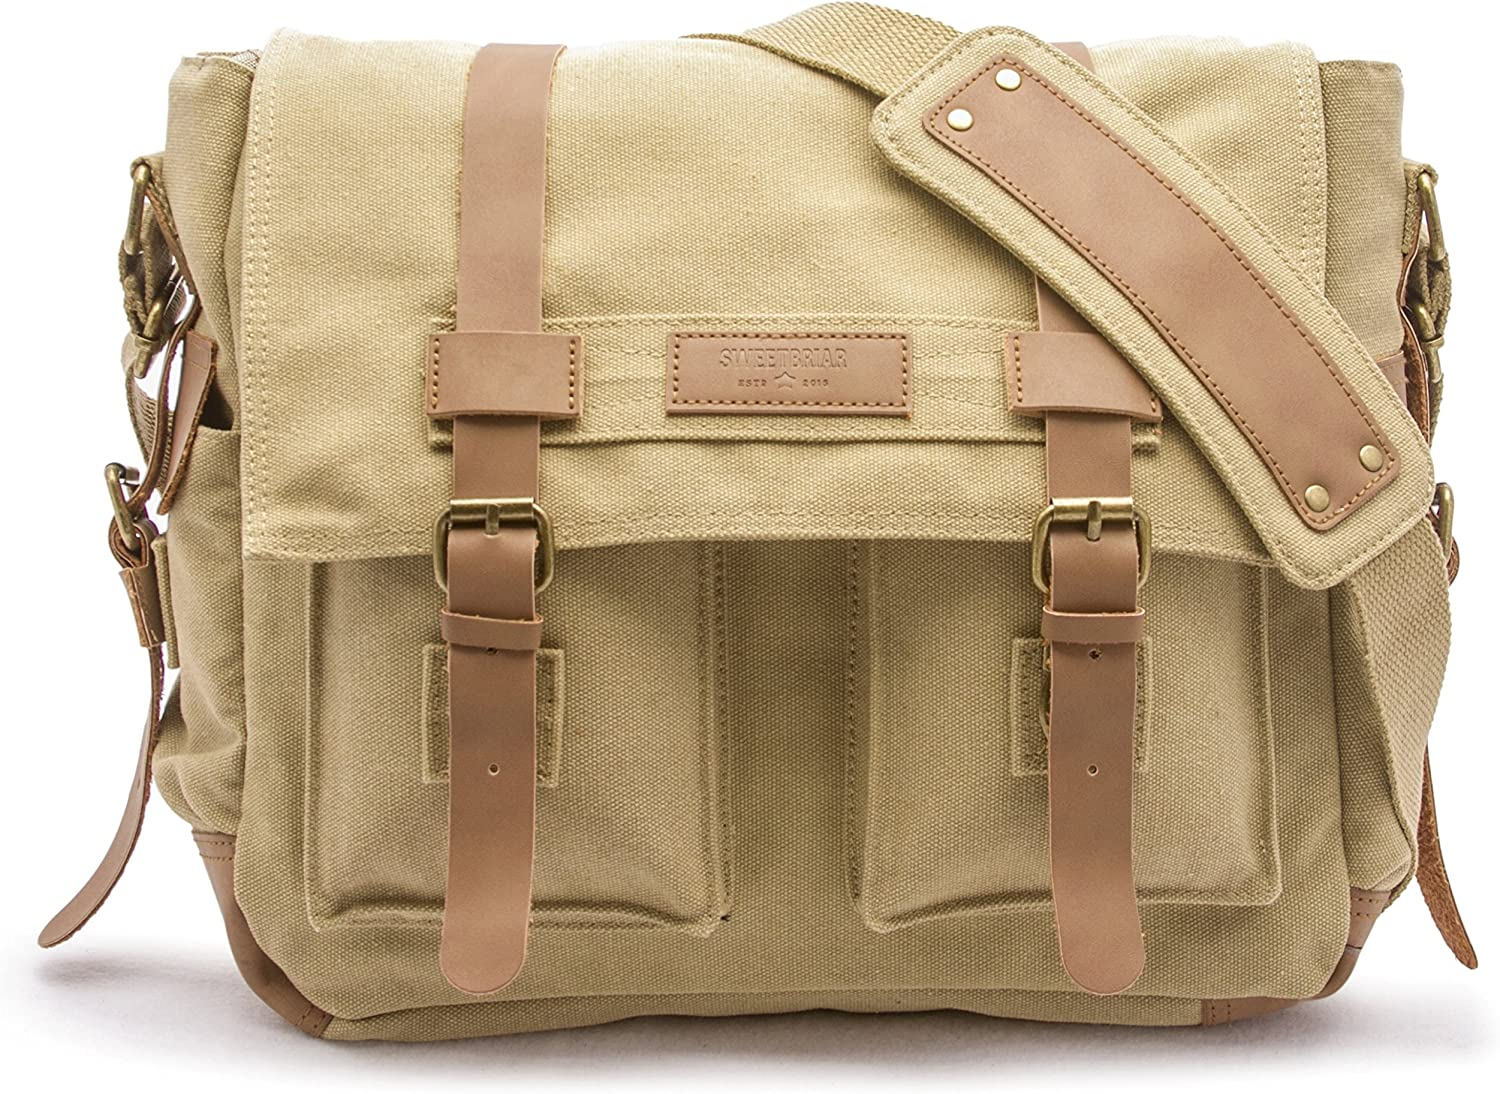 Sweetbriar Classic Laptop Messenger Bag, Army Khaki - Canvas Pack Designed to Protect Laptops up to 15.6 Inches